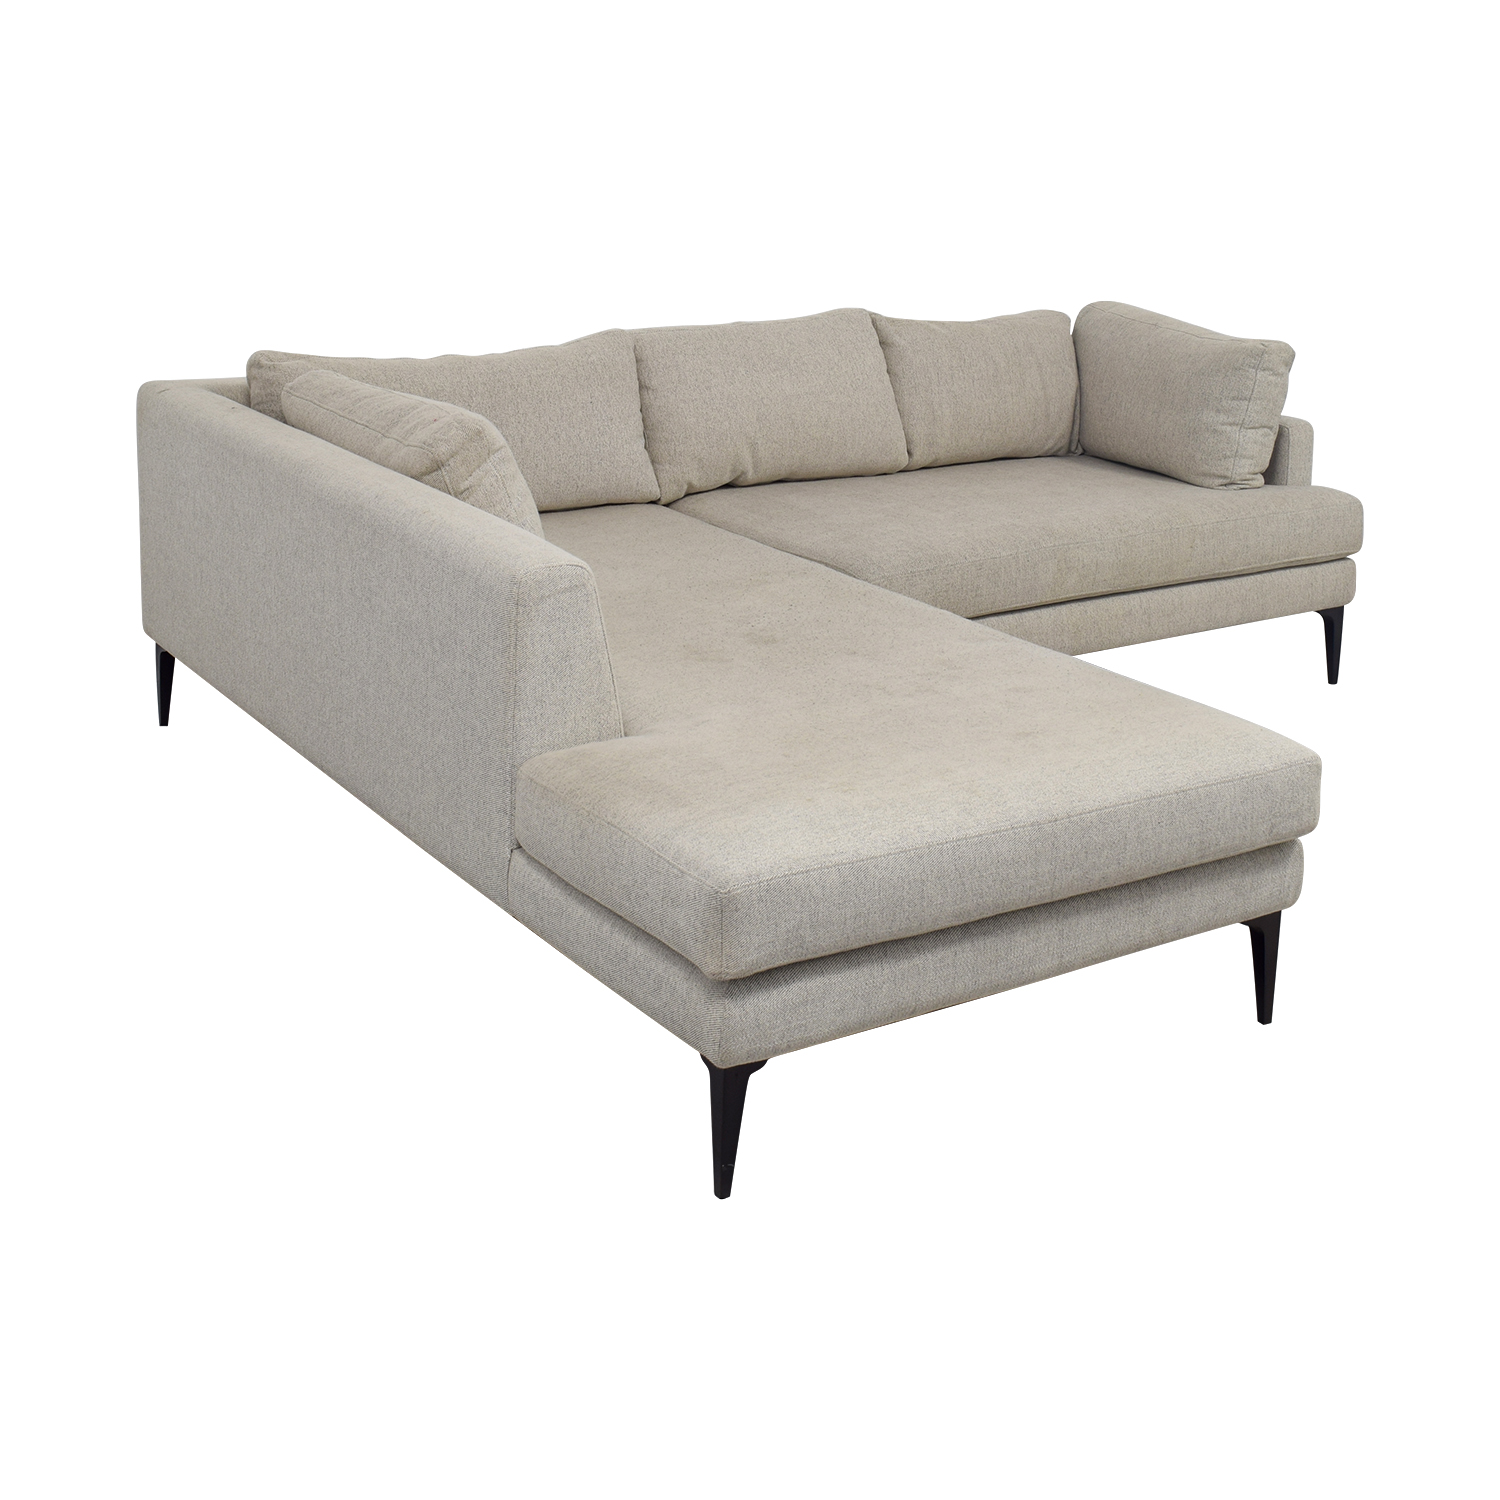 West Elm West Elm Beige Chaise Sectional price